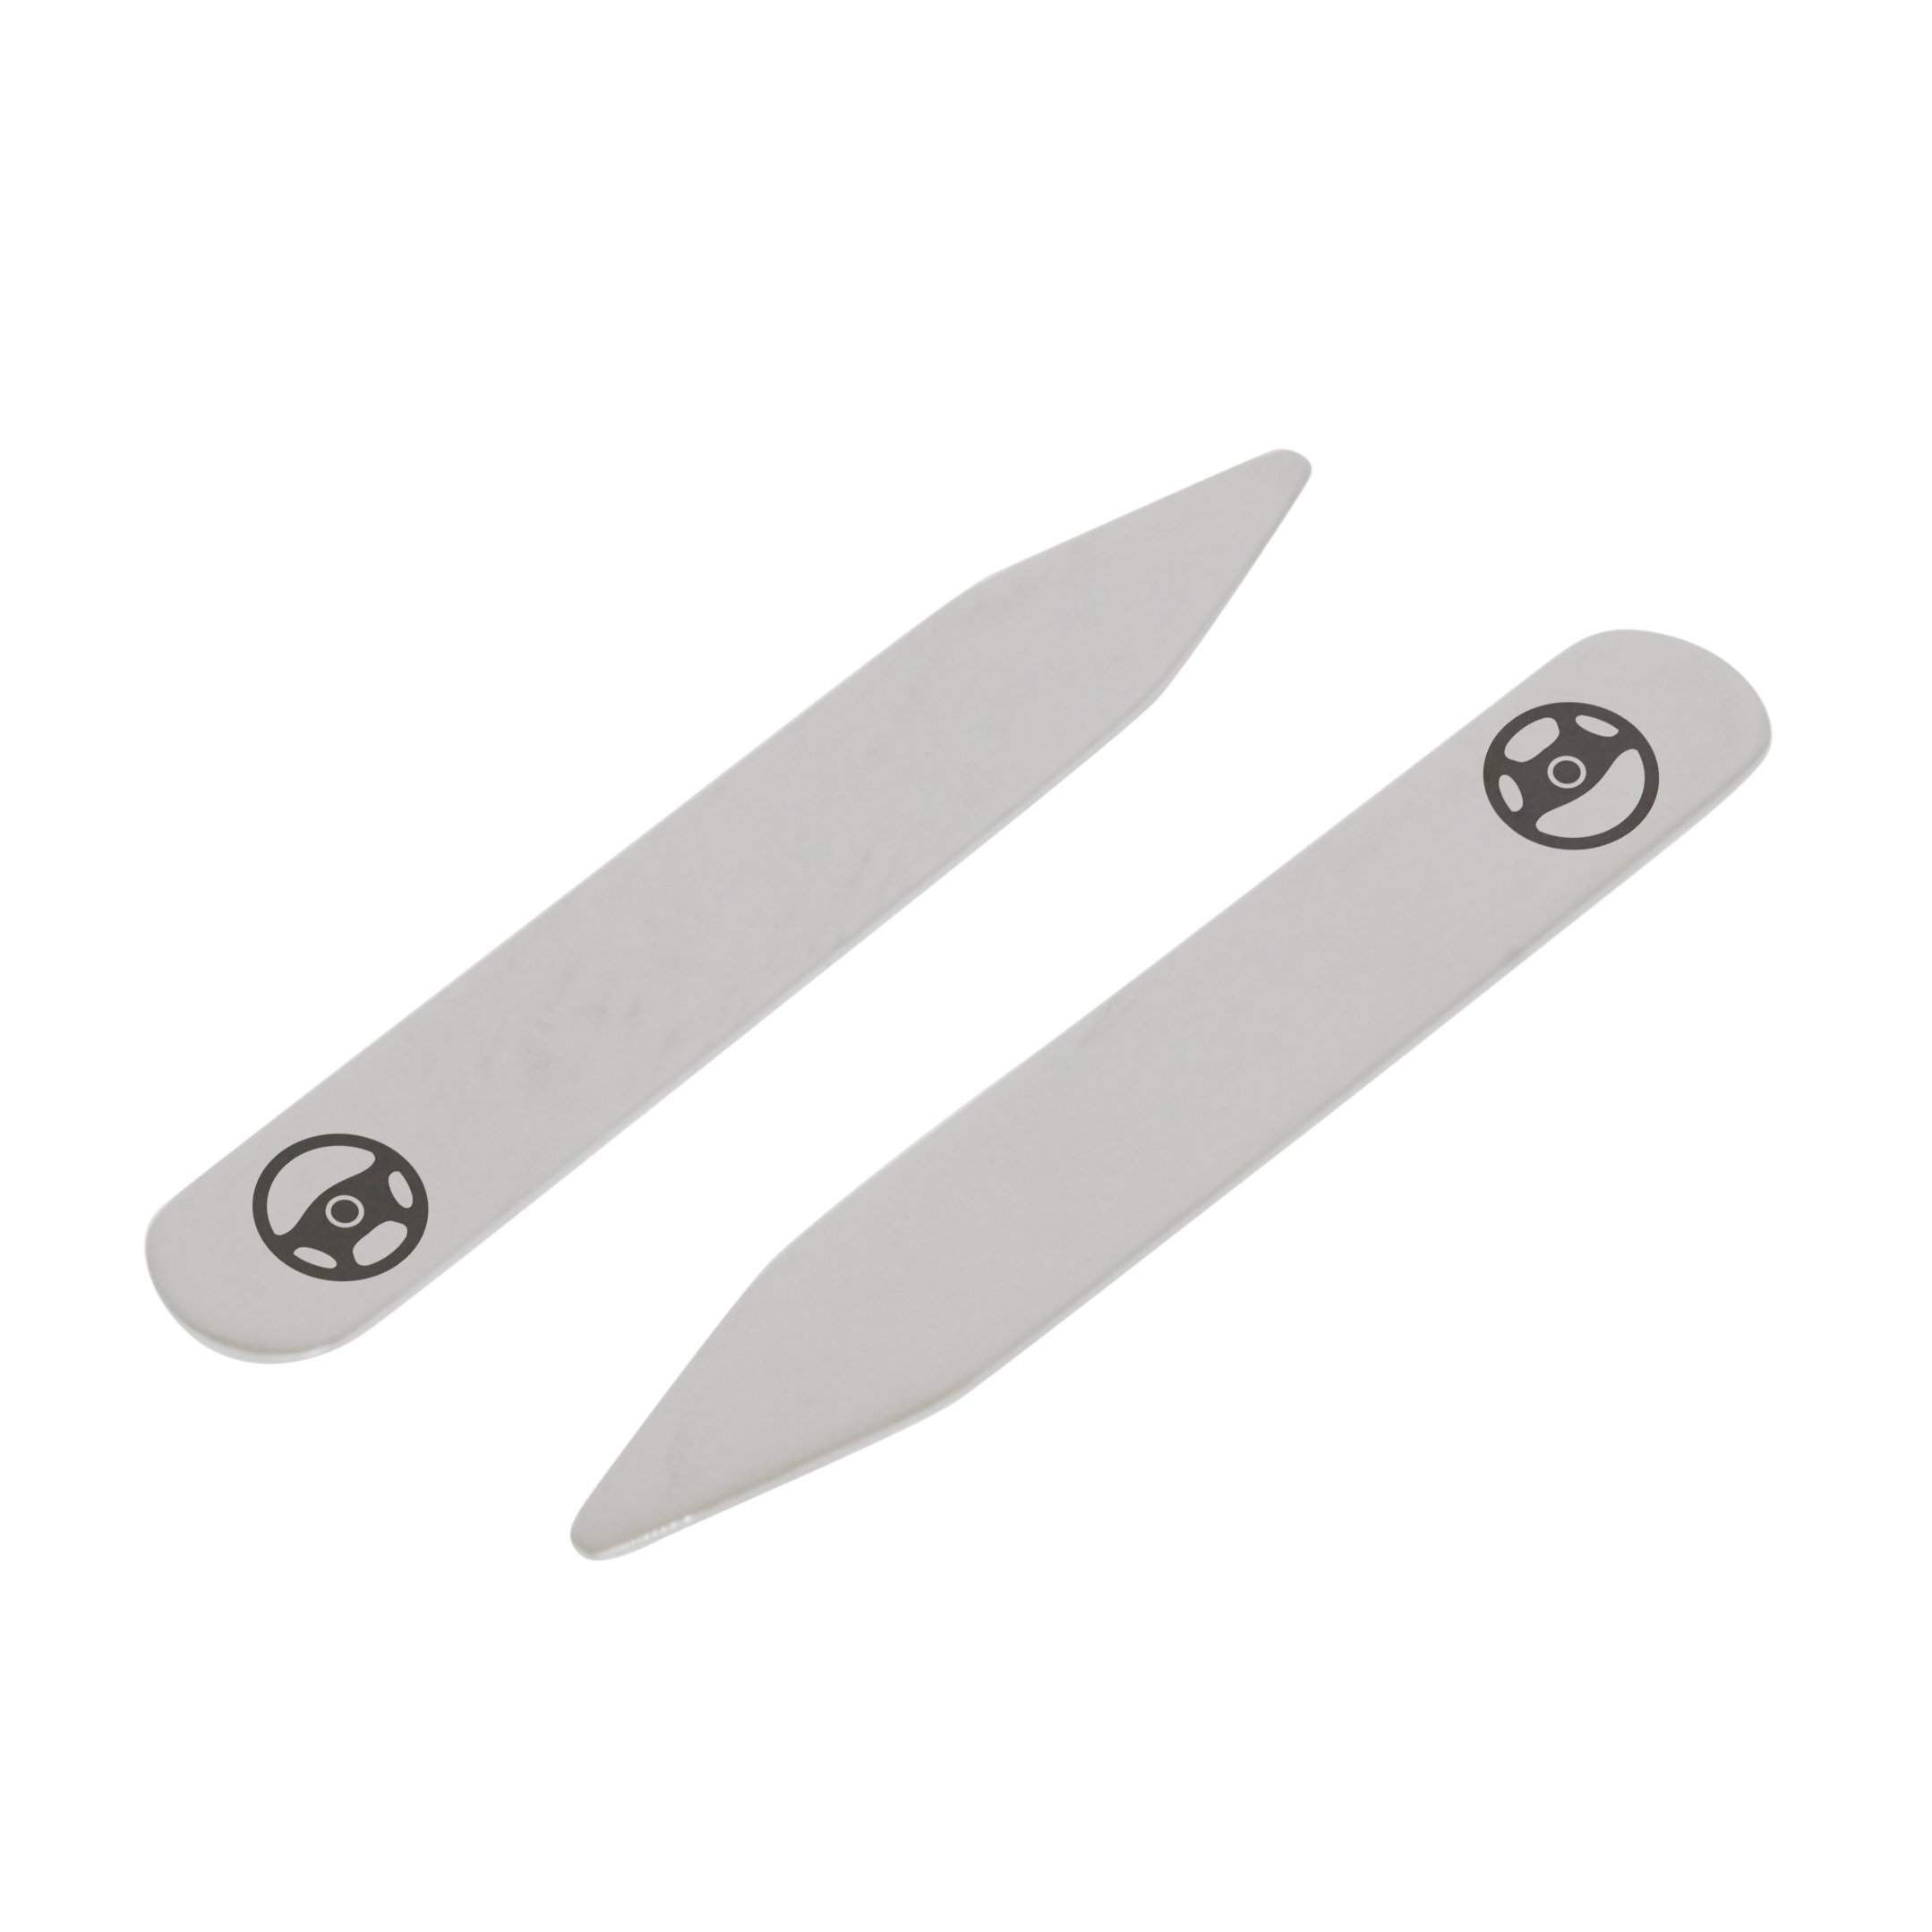 MODERN GOODS SHOP Stainless Steel Collar Stays With Laser Engraved Steering Wheel Design - 2.5 Inch Metal Collar Stiffeners - Made In USA